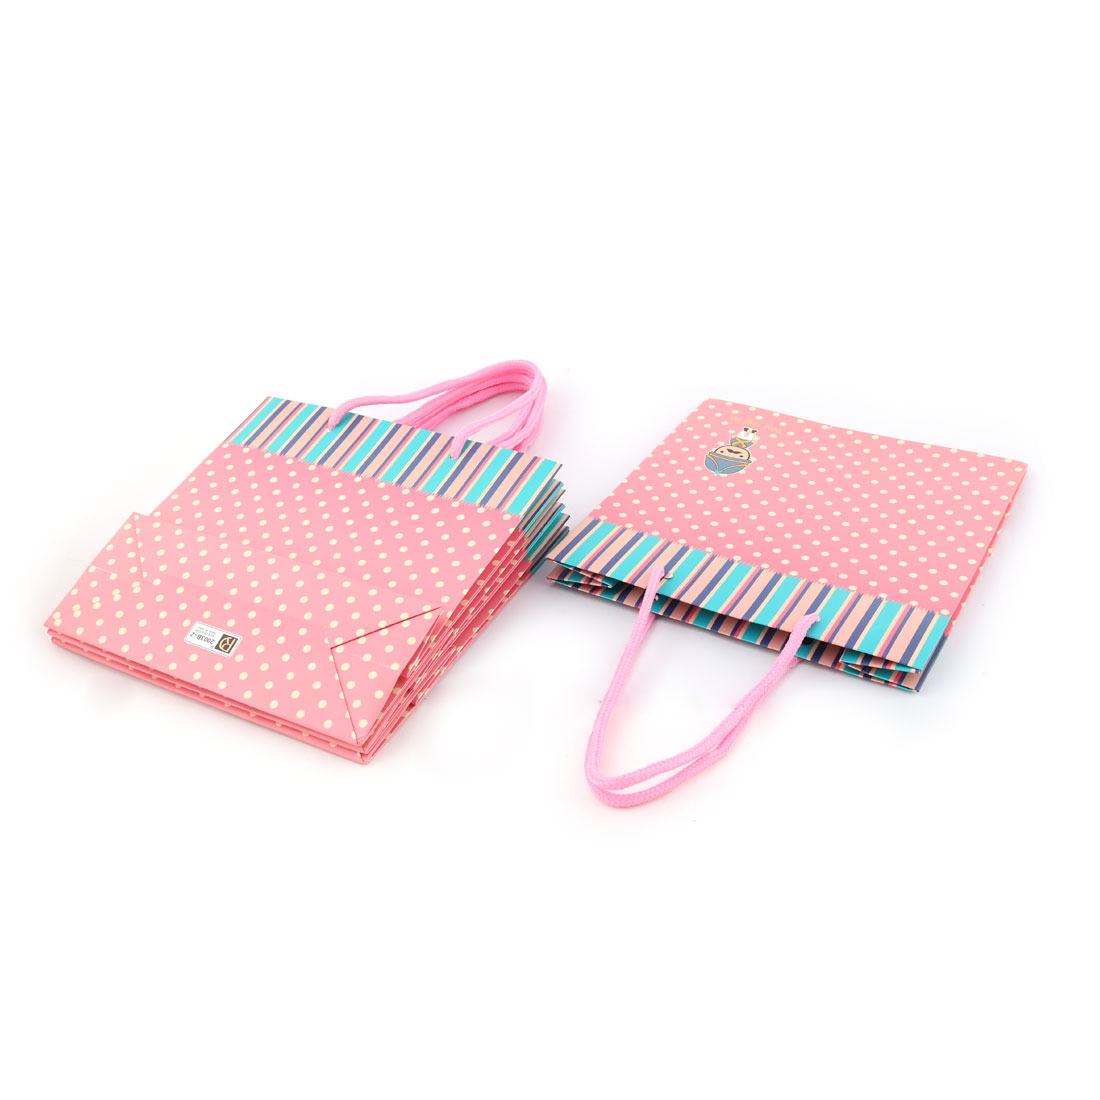 Paper Dot Stripe Soldier Pattern Birthday Party Present Gift Bags Holder Pink 4pcs